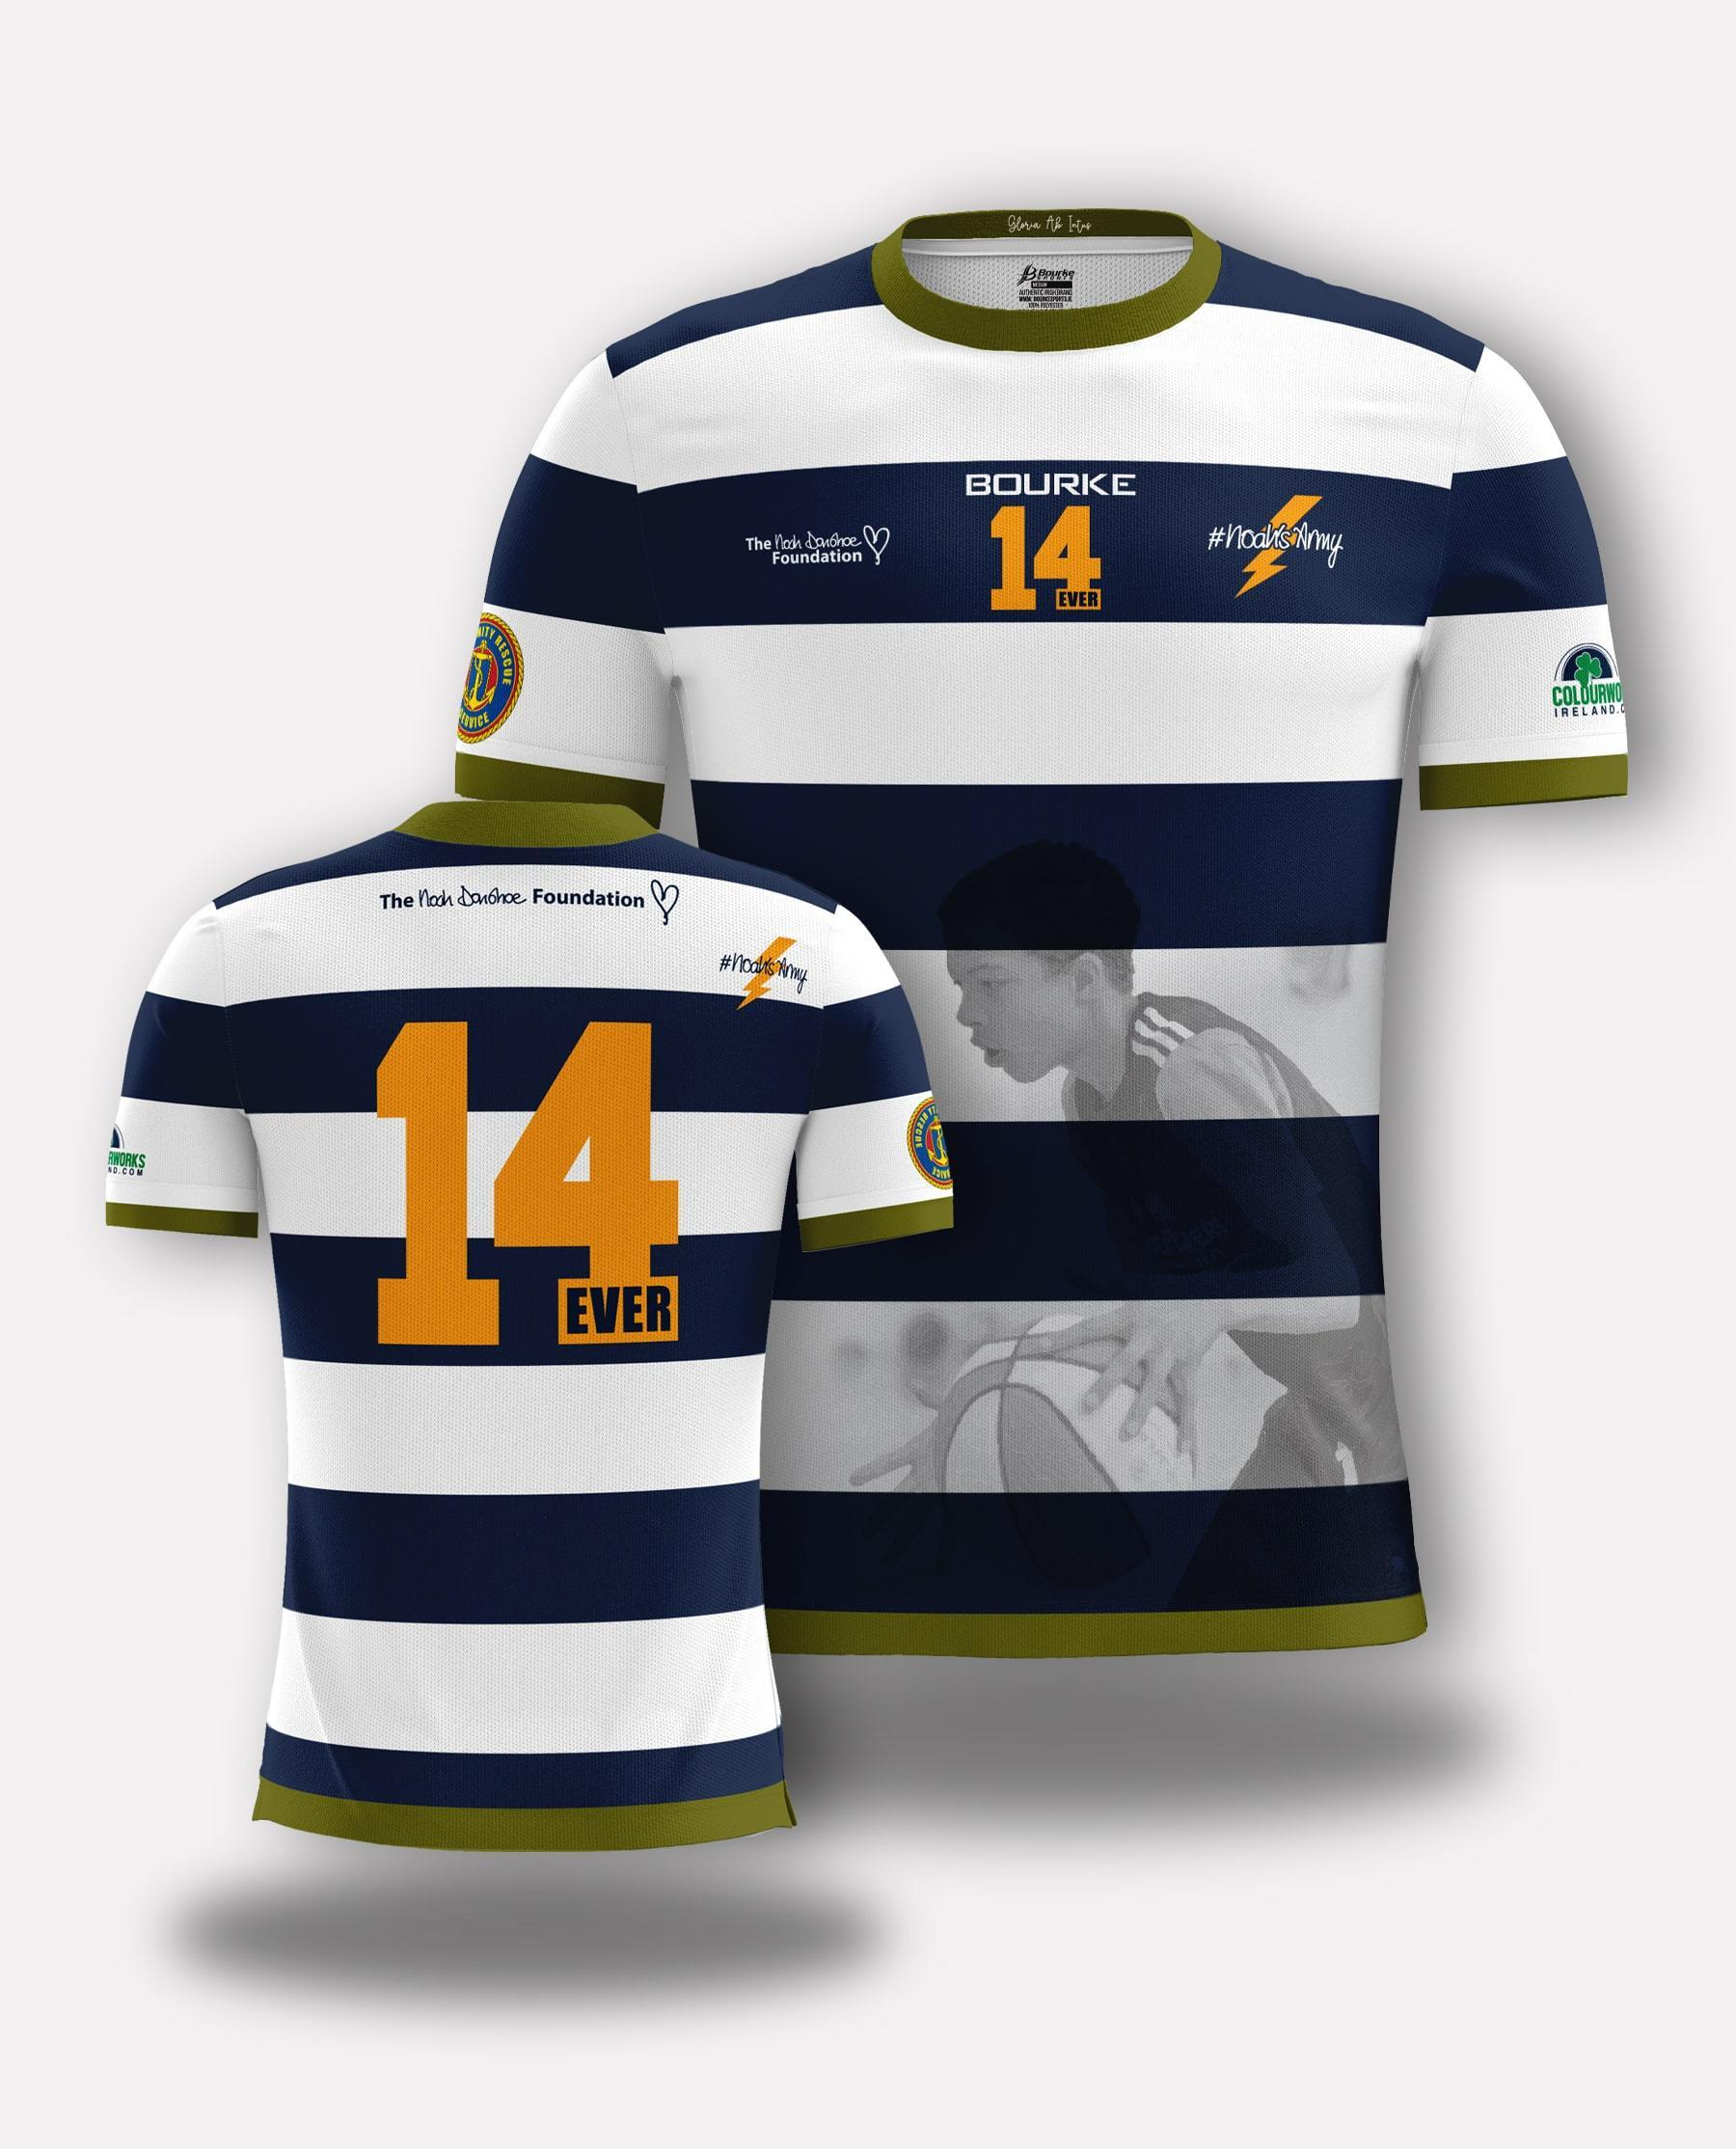 Noah Donohoe Foundation Jersey - Bourke Sports Limited